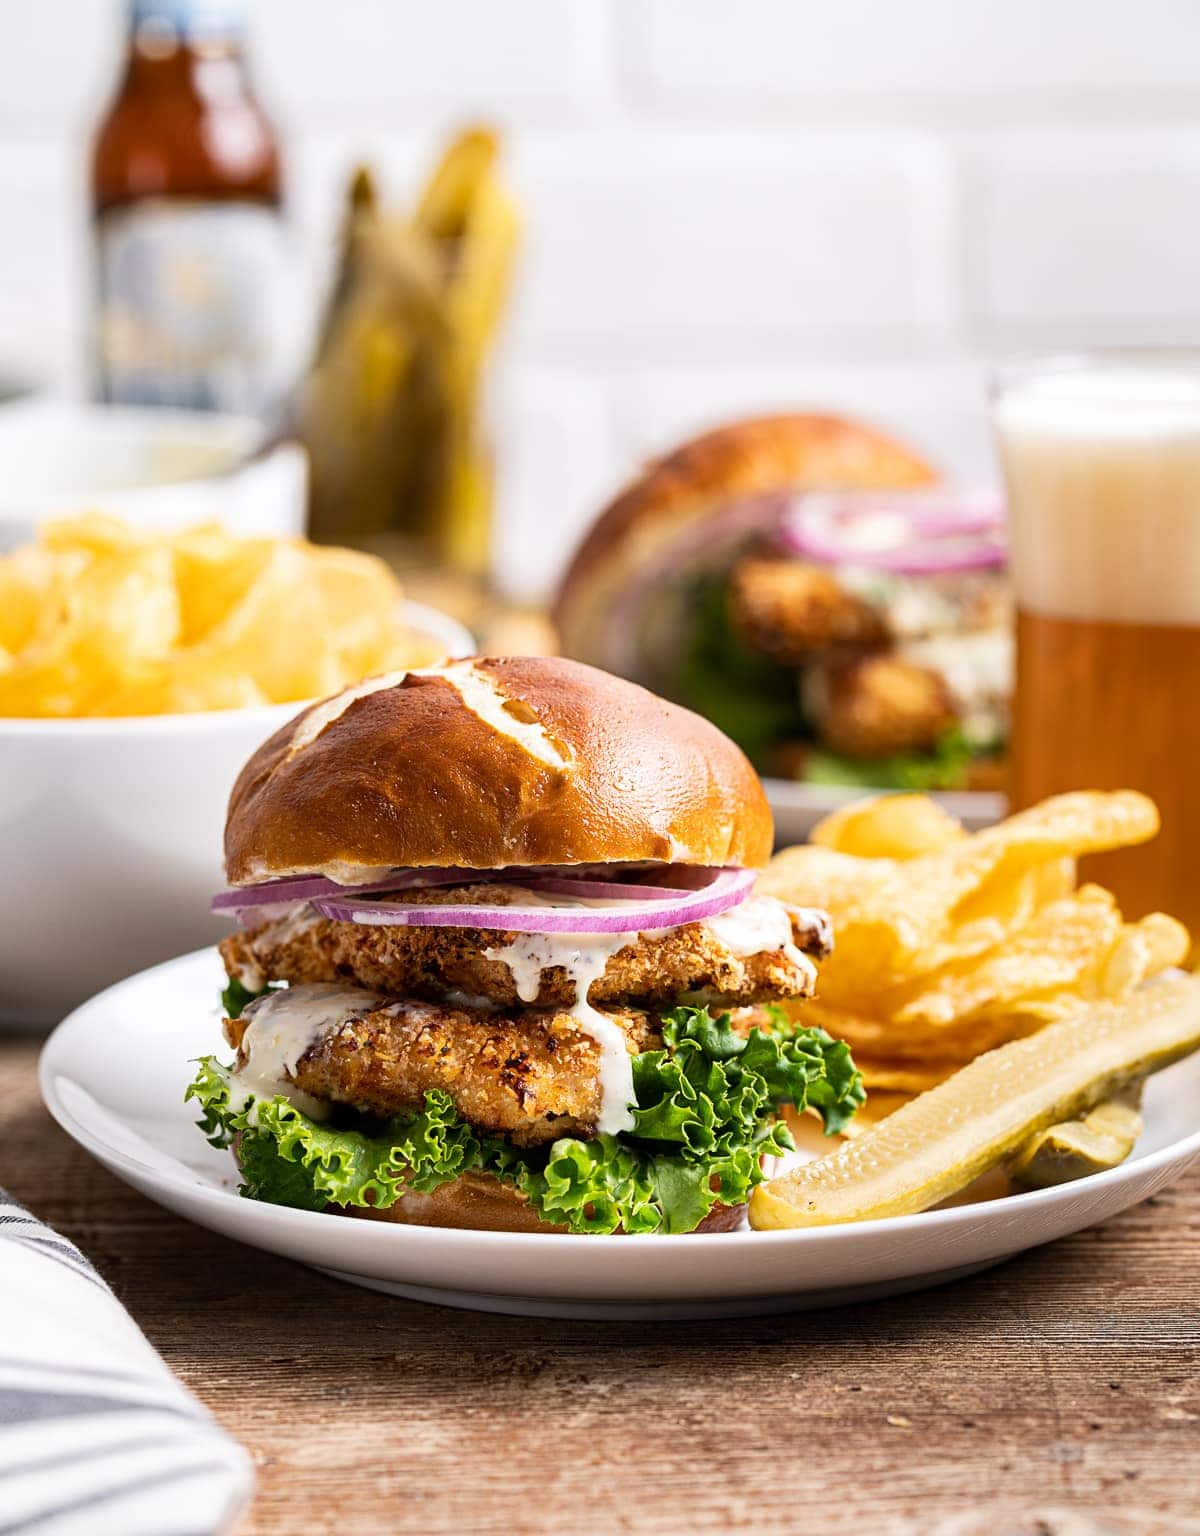 air fryer chicken sandwich with green lettuce, red onion slices, pickles and chips on plate, beer